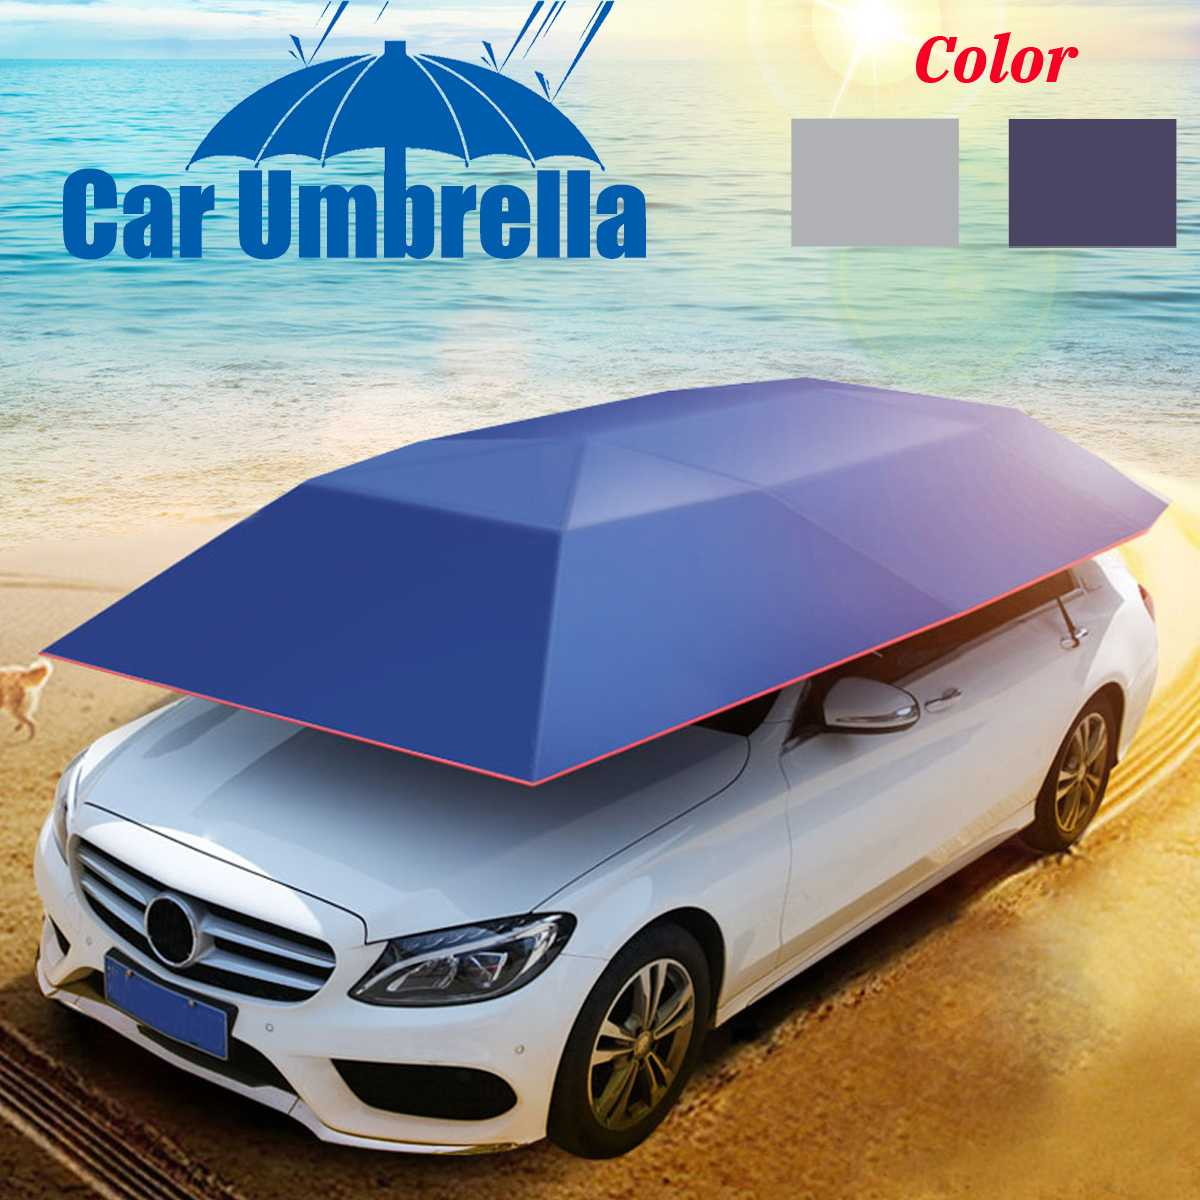 Portable Oxford Outdoor Car Vehicle Tent Car Umbrella Sun Shade Cover Cloth Polyester Cover Car Anti-UV Windproof Cover